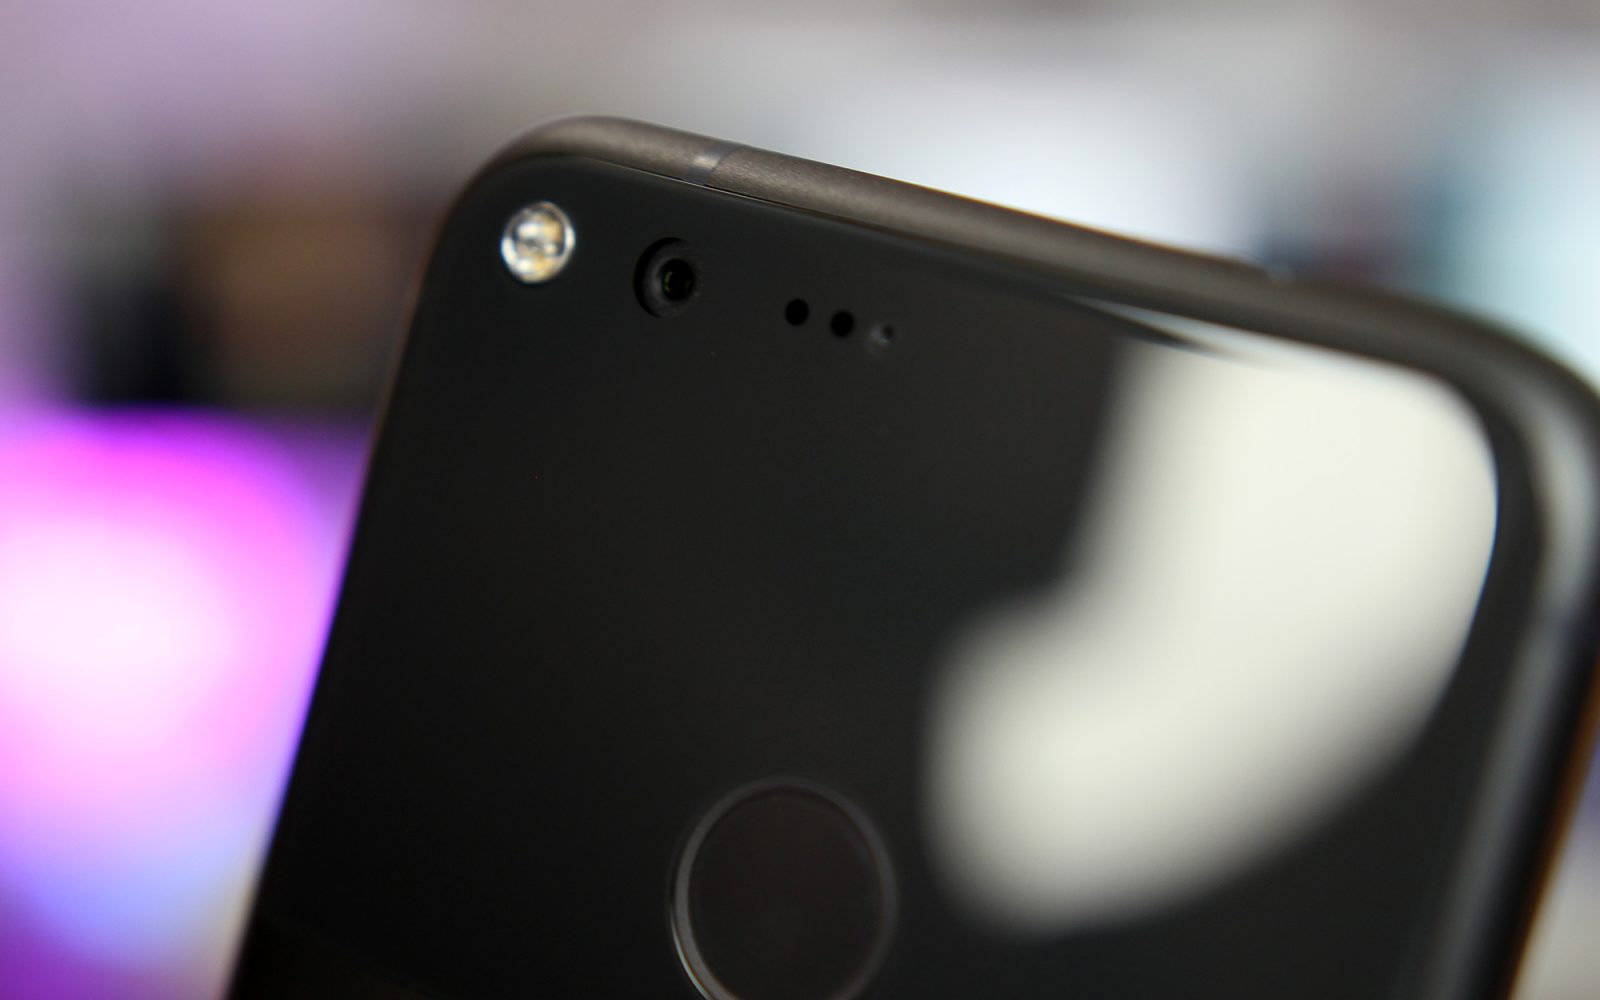 Some Google Pixel owners are reporting bizarre camera app